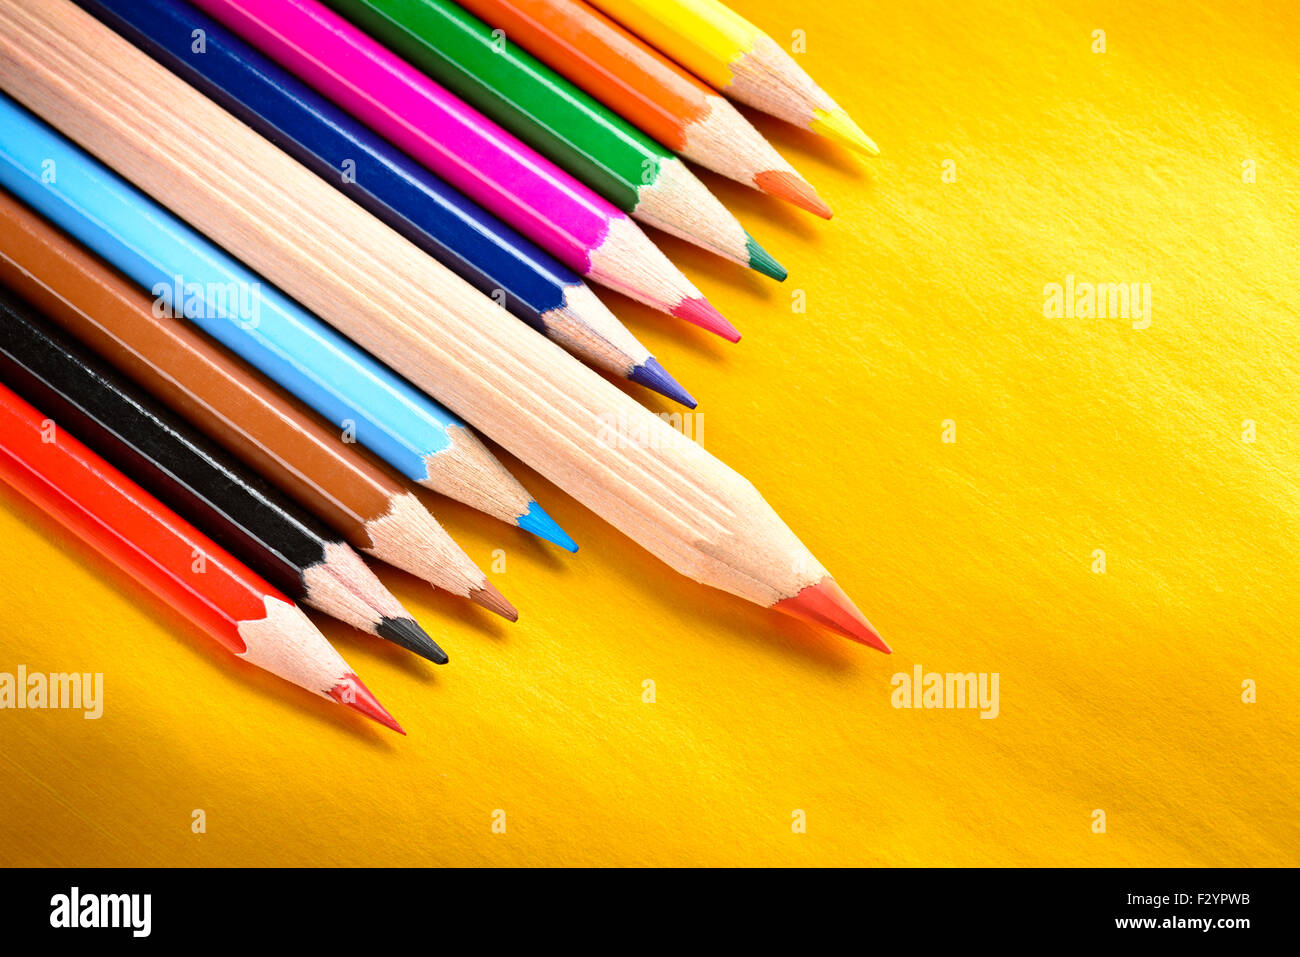 Red pencil standing out from a bunch of colored pencils, leadership concept - Stock Image